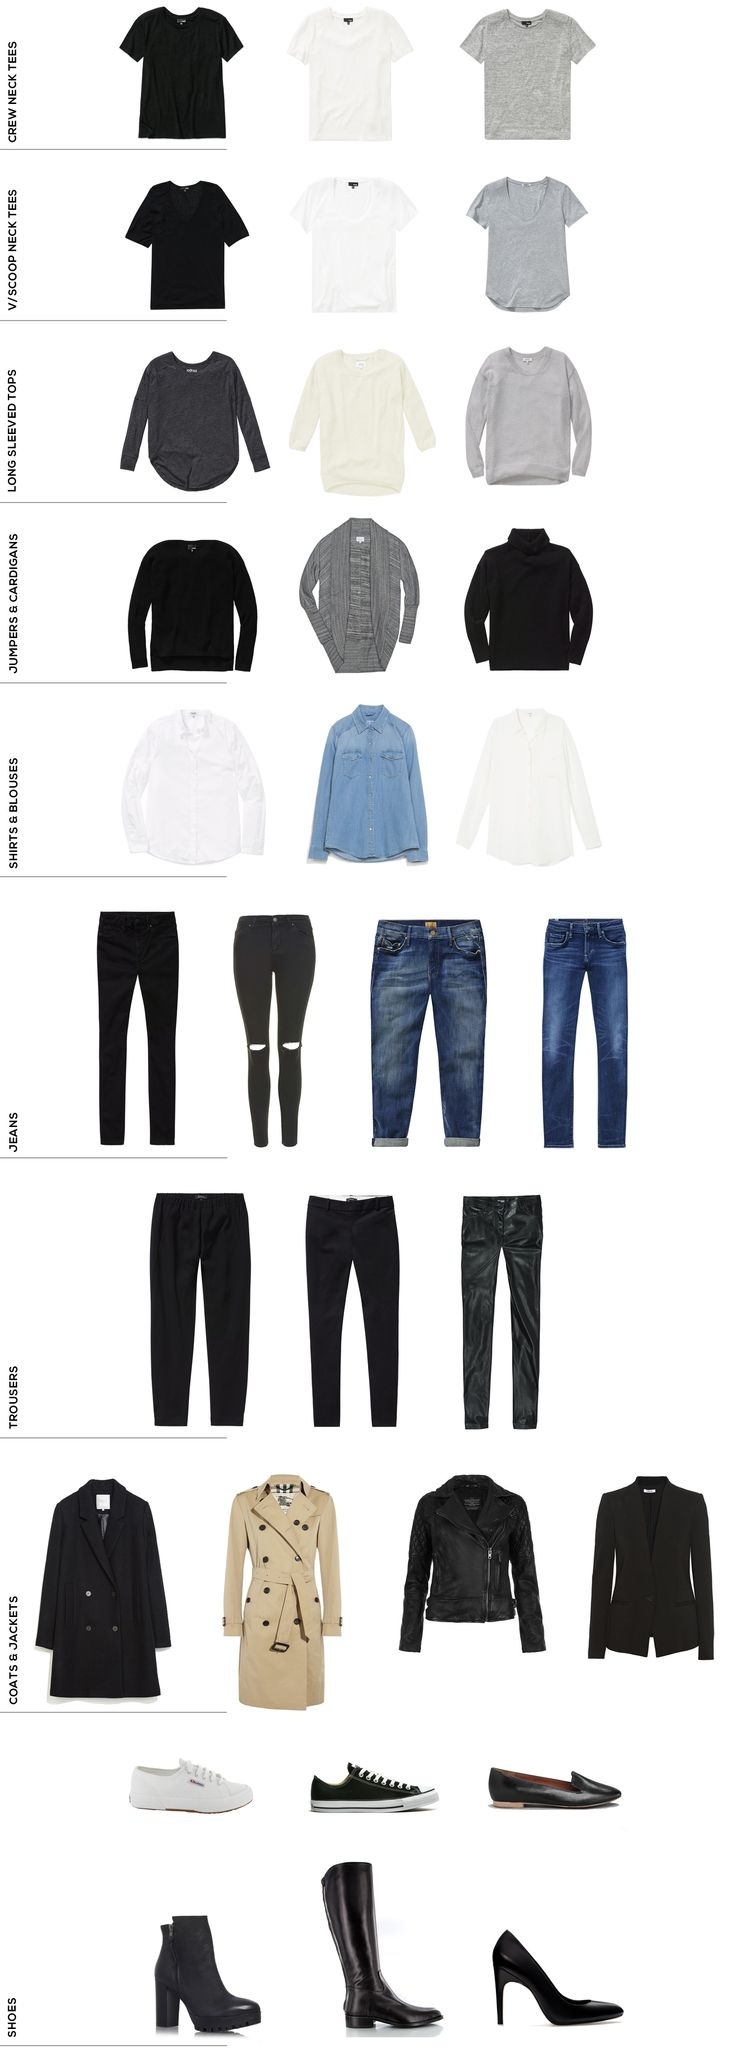 A Capsule Wardrobe // The Basics - Becca Haf                                                                                                                                                      More